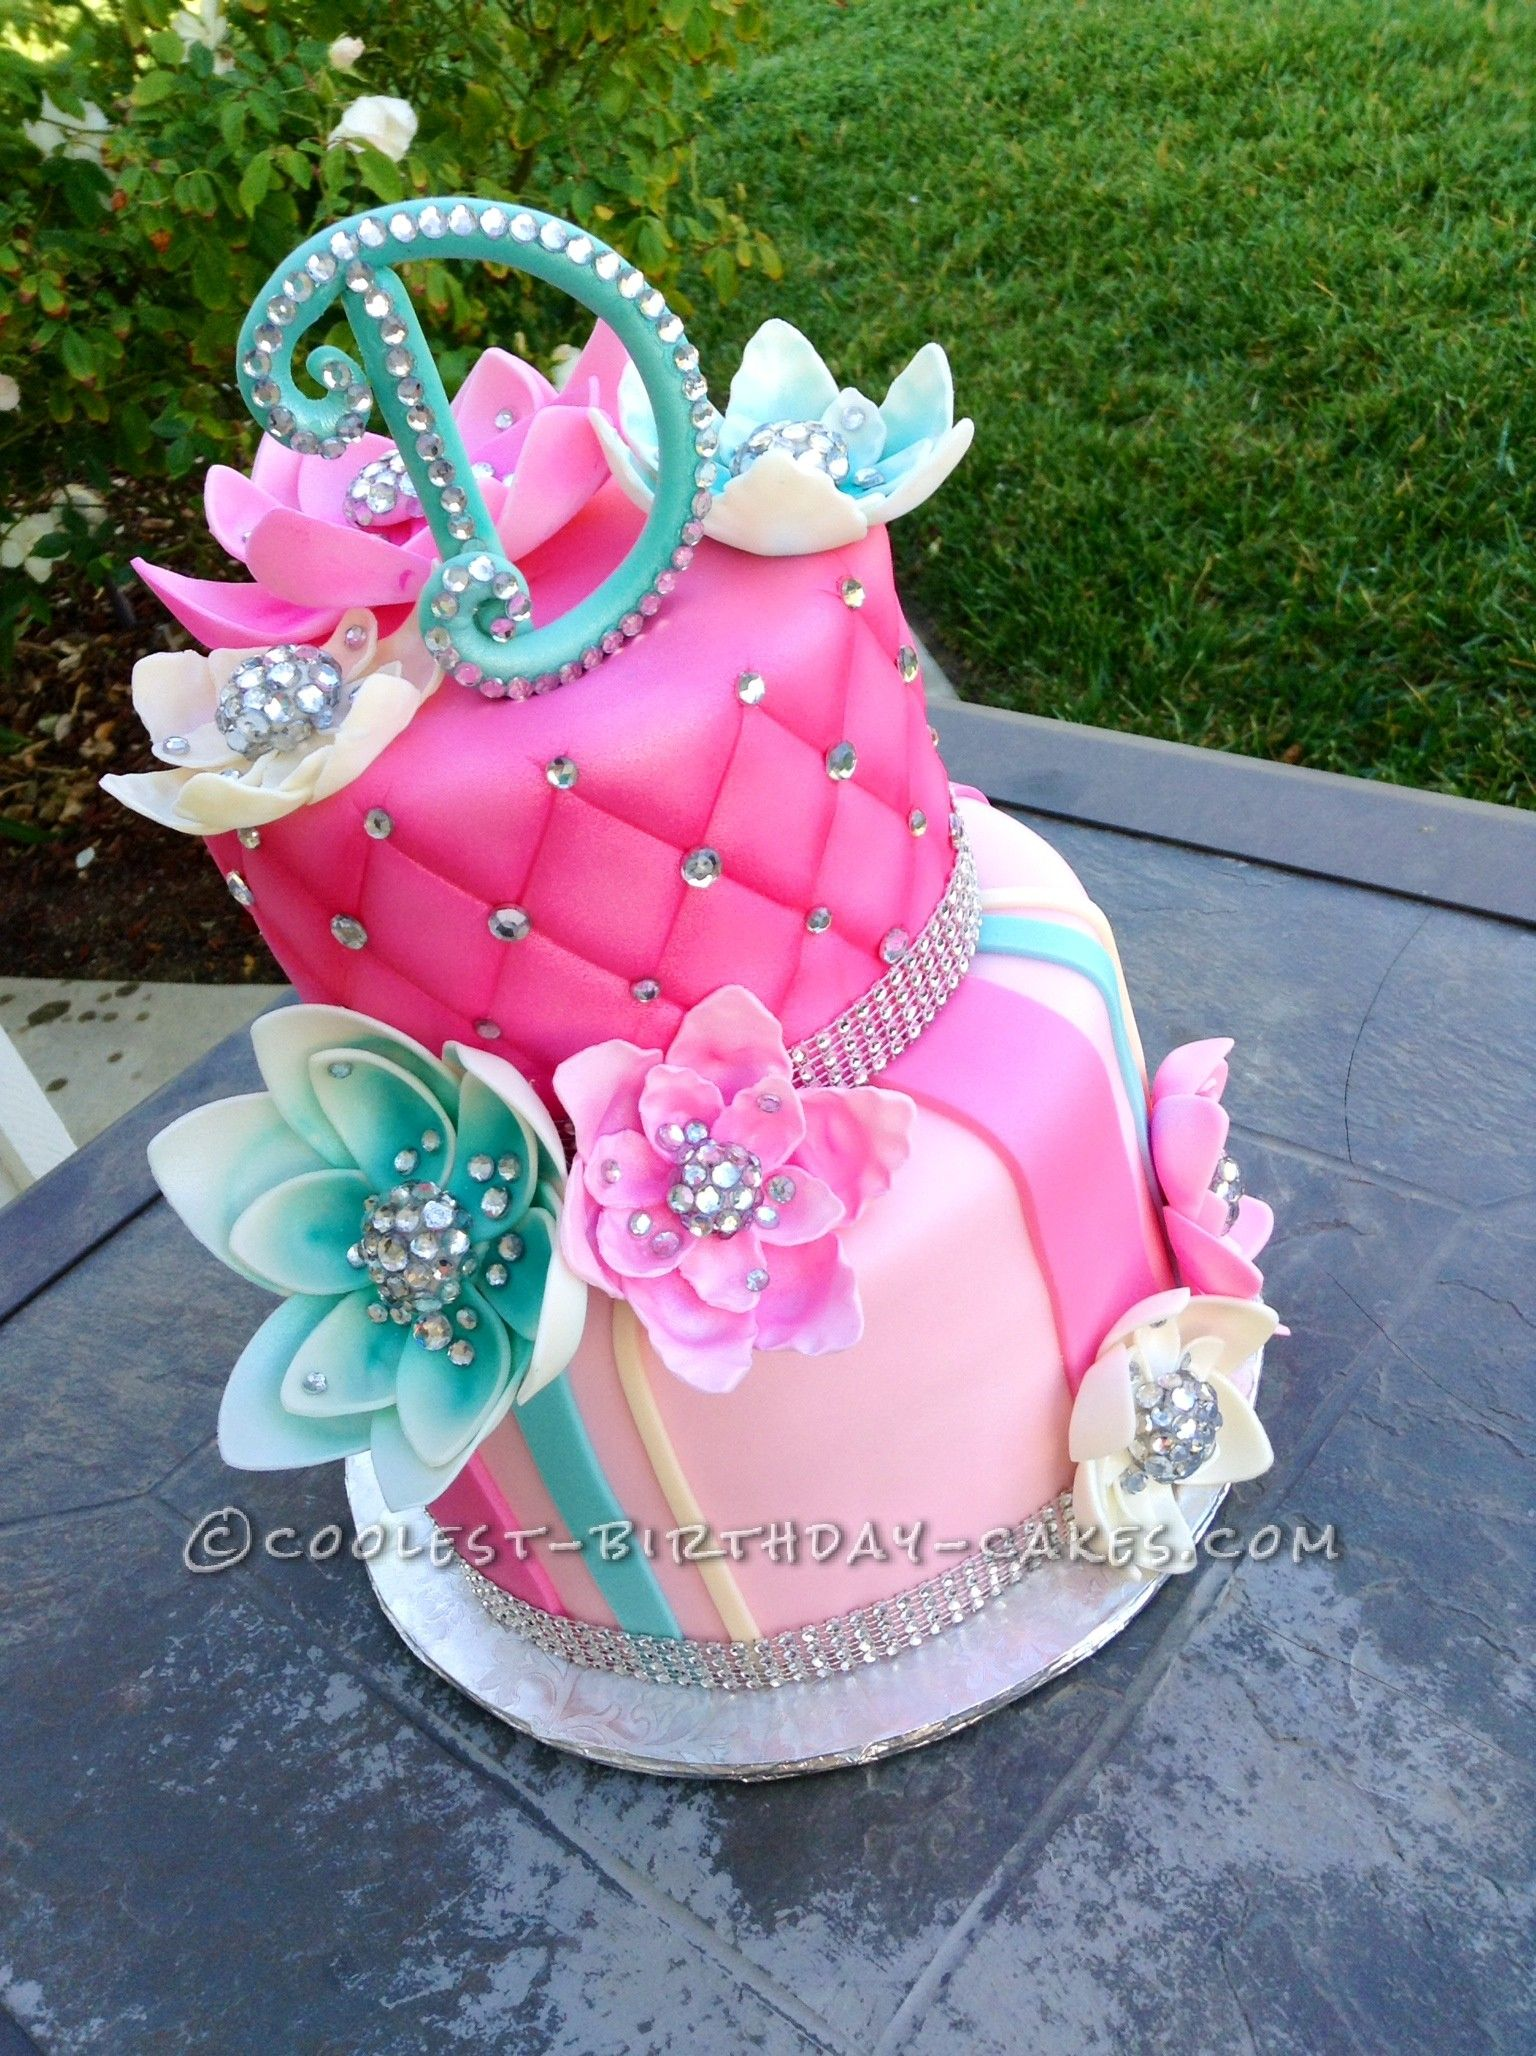 Delicious Homemade Beautiful Birthday Cake With Bling In